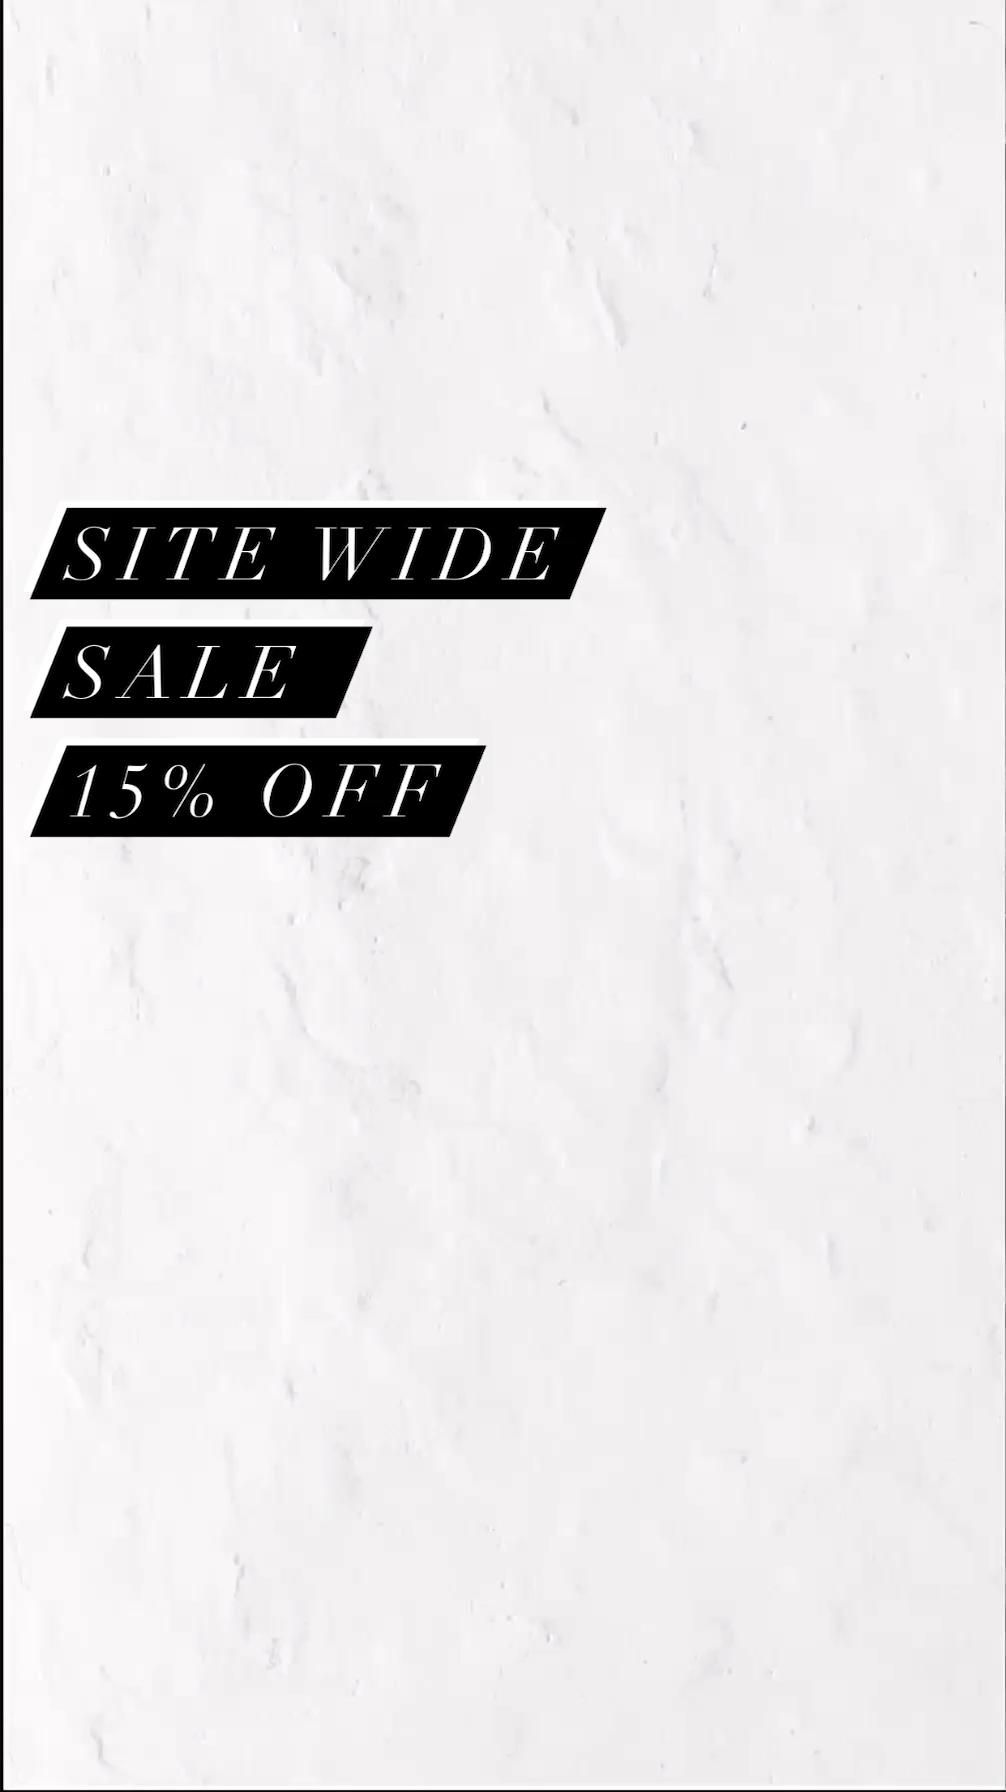 Check our 15% Off Sale - Valid till 9/30/20